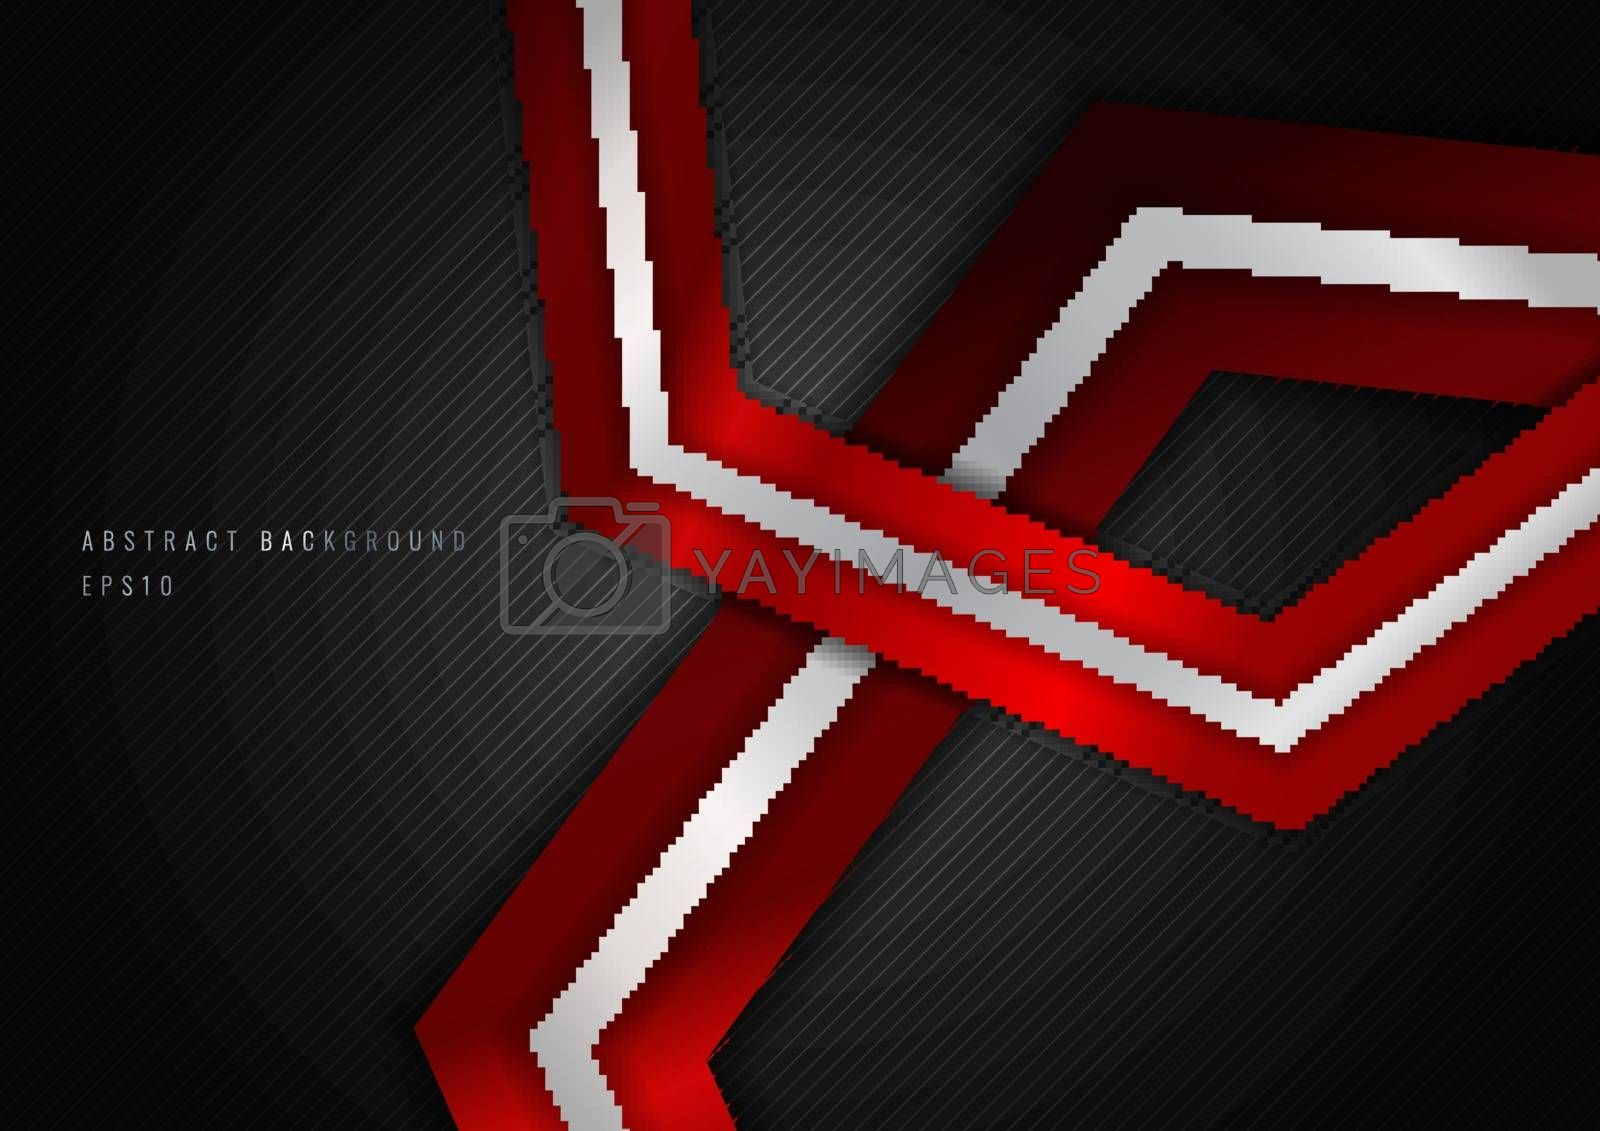 Abstract Red Metalic Geometric Hexagon with Silver Line Metal Overlapping Layer on Black Background. Vector Illustration